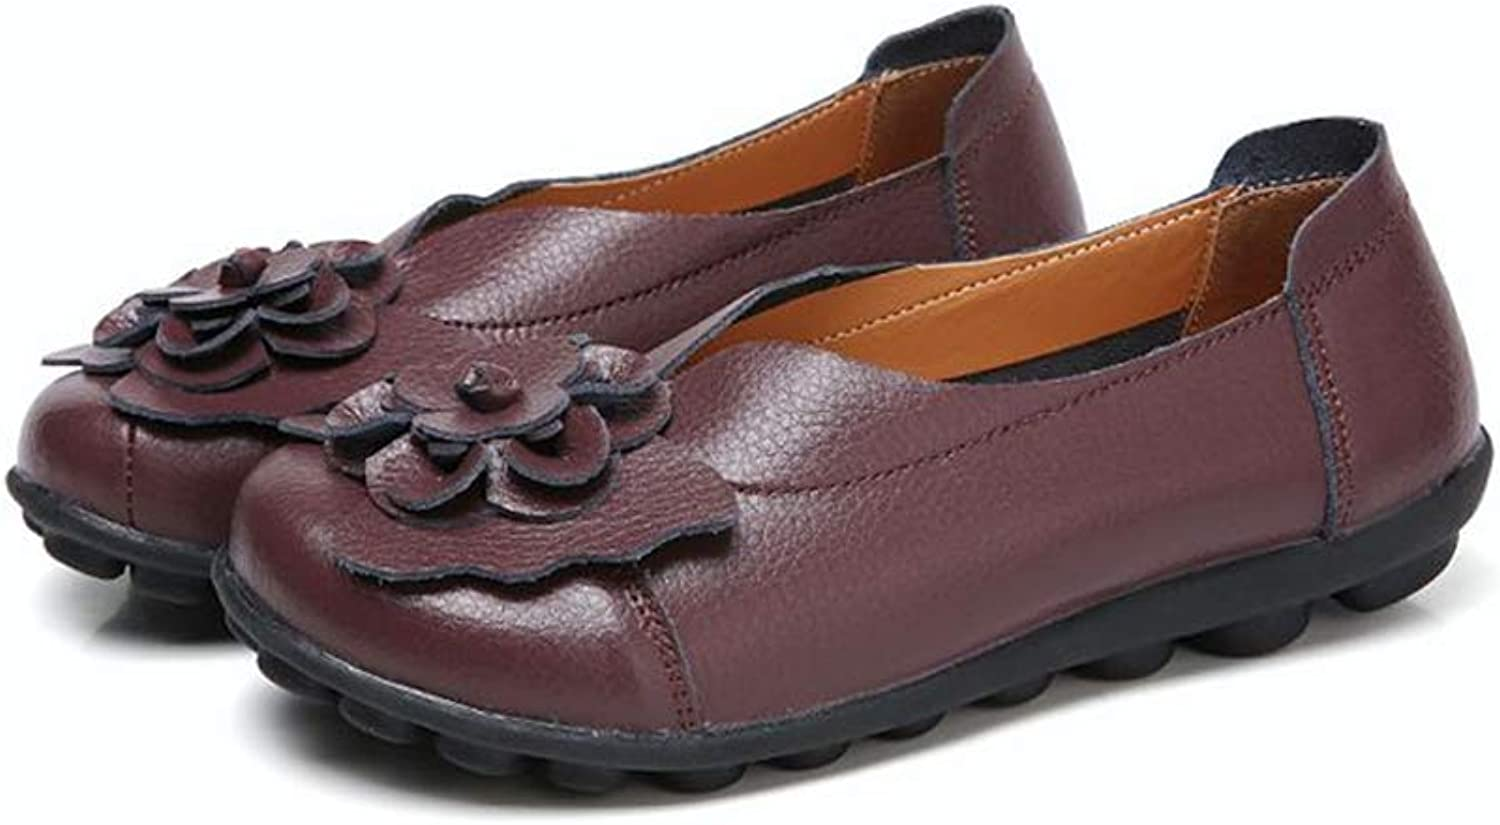 MOREMOO Women Real Leather shoes Moccasins Mother Loafers Soft Leisure Flats Driving Casual Footwear